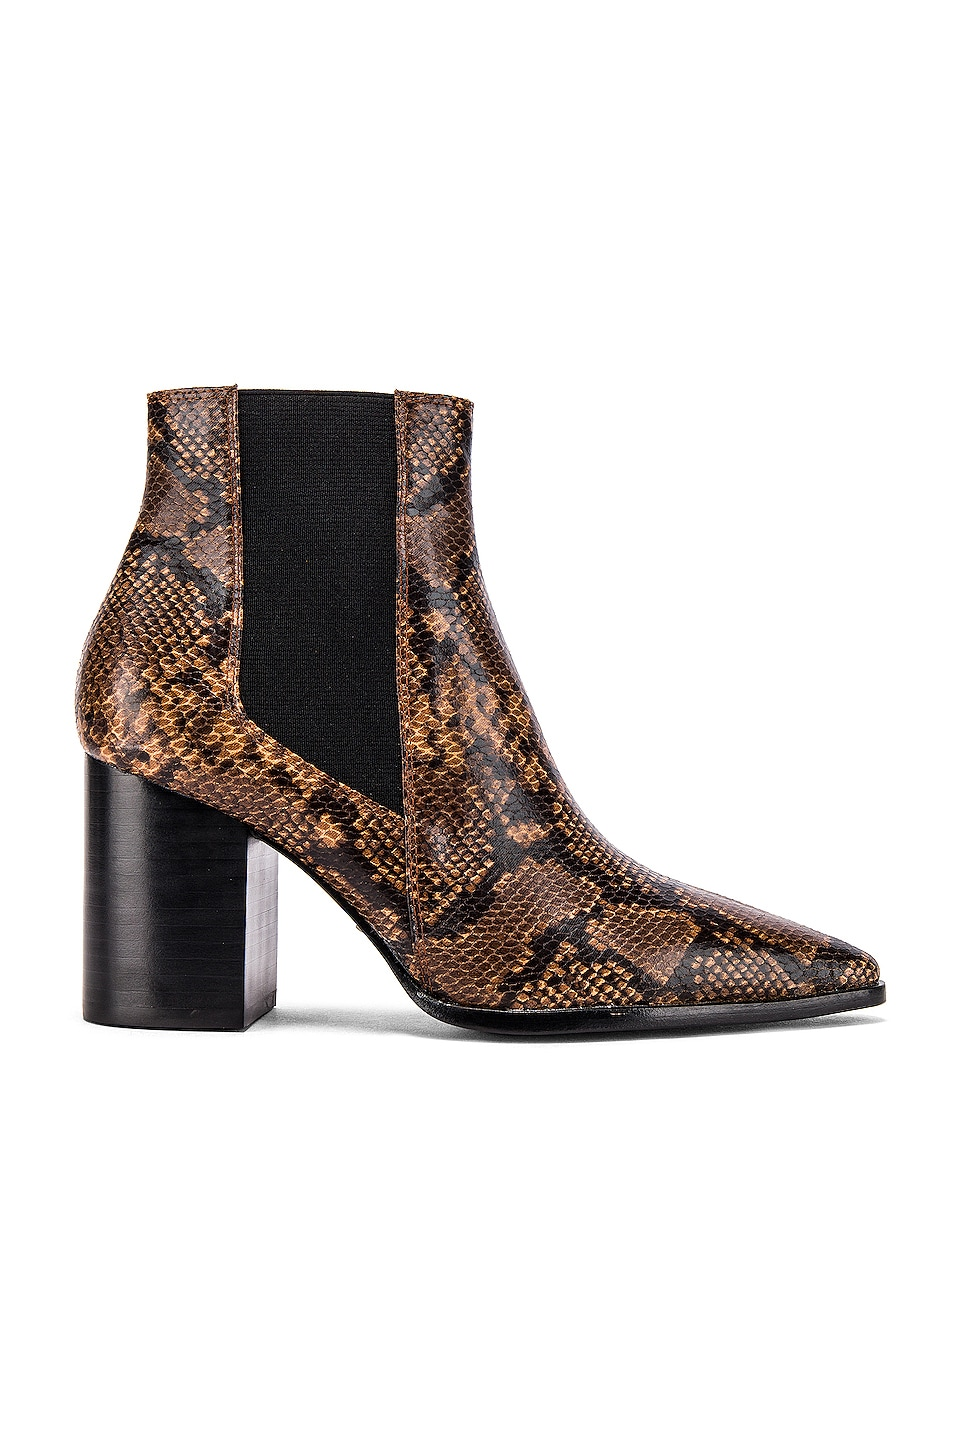 House of Harlow 1960 X REVOLVE Nick Bootie in Snake